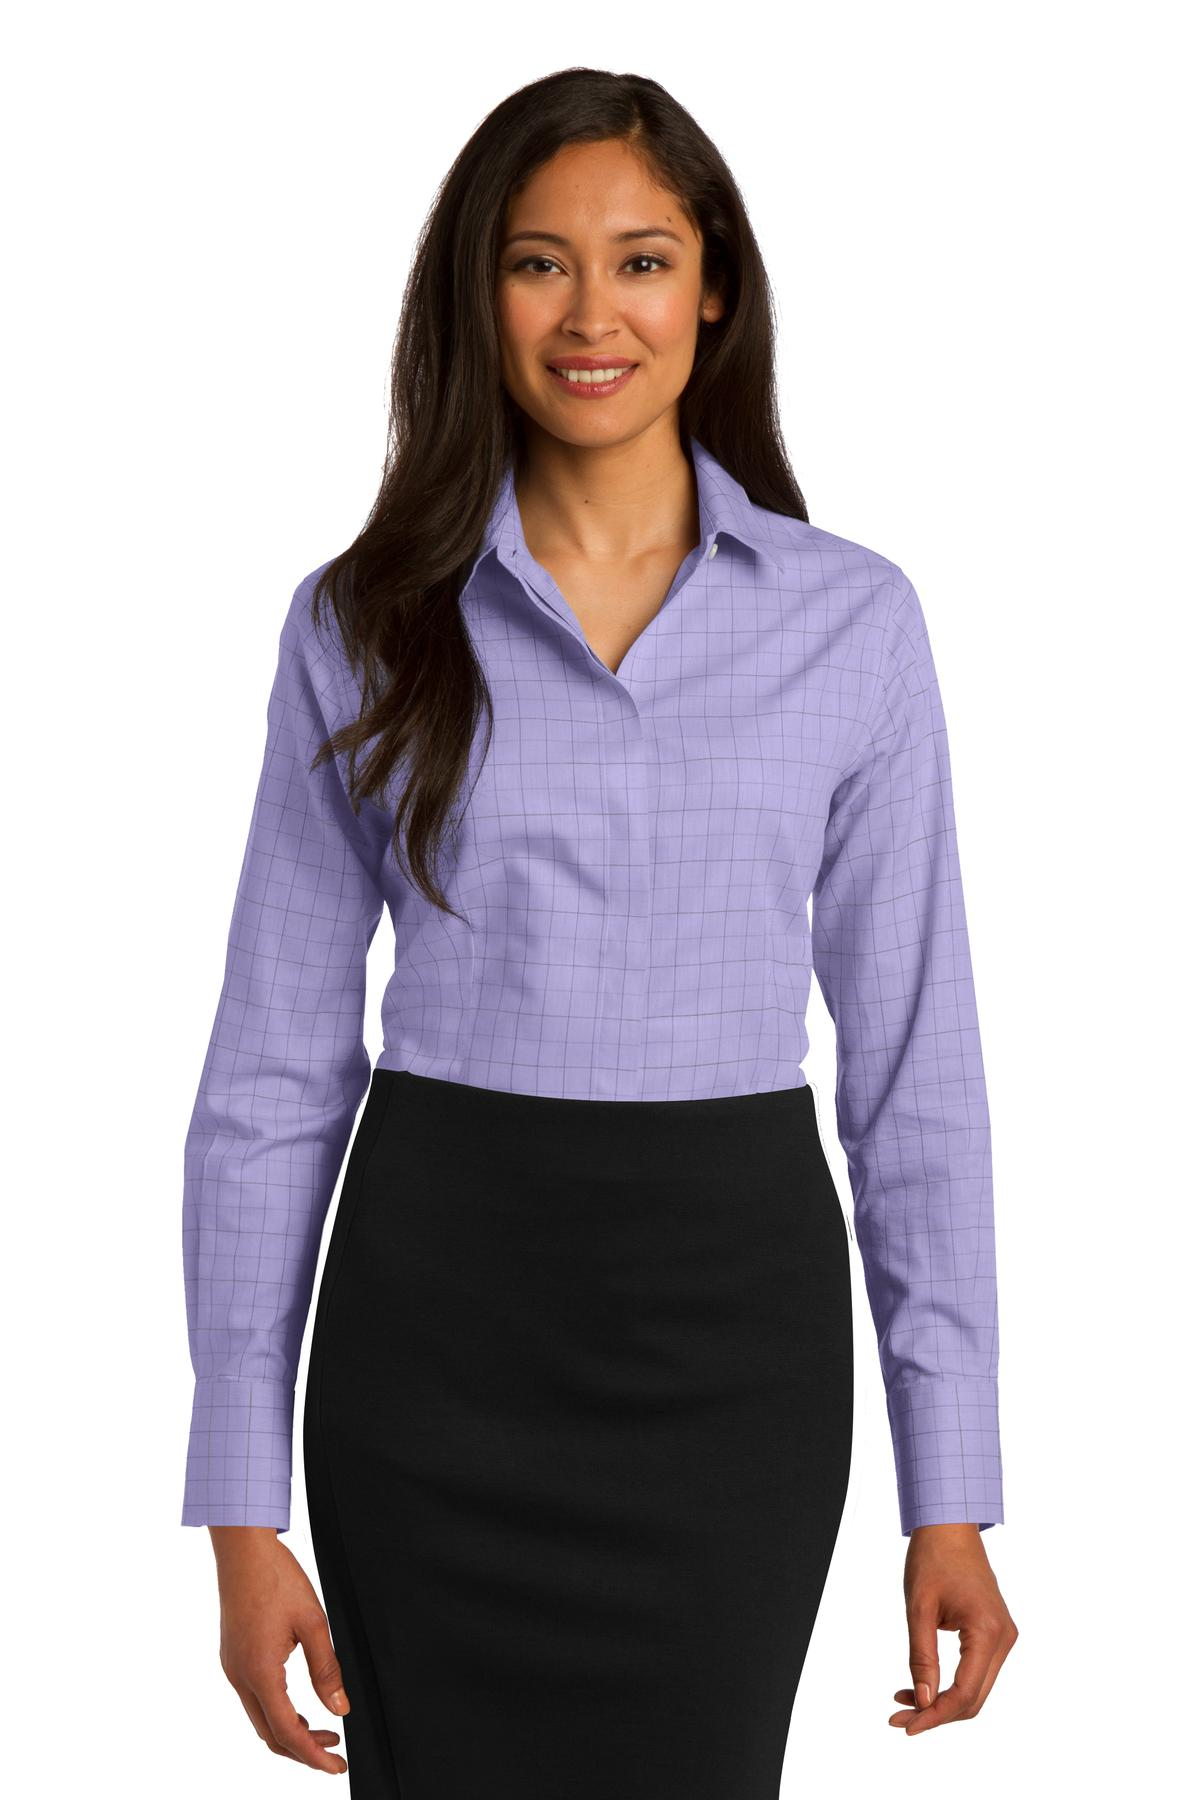 Red House ®  Ladies Windowpane Plaid Non-Iron Shirt. RH71 - Thistle Purple